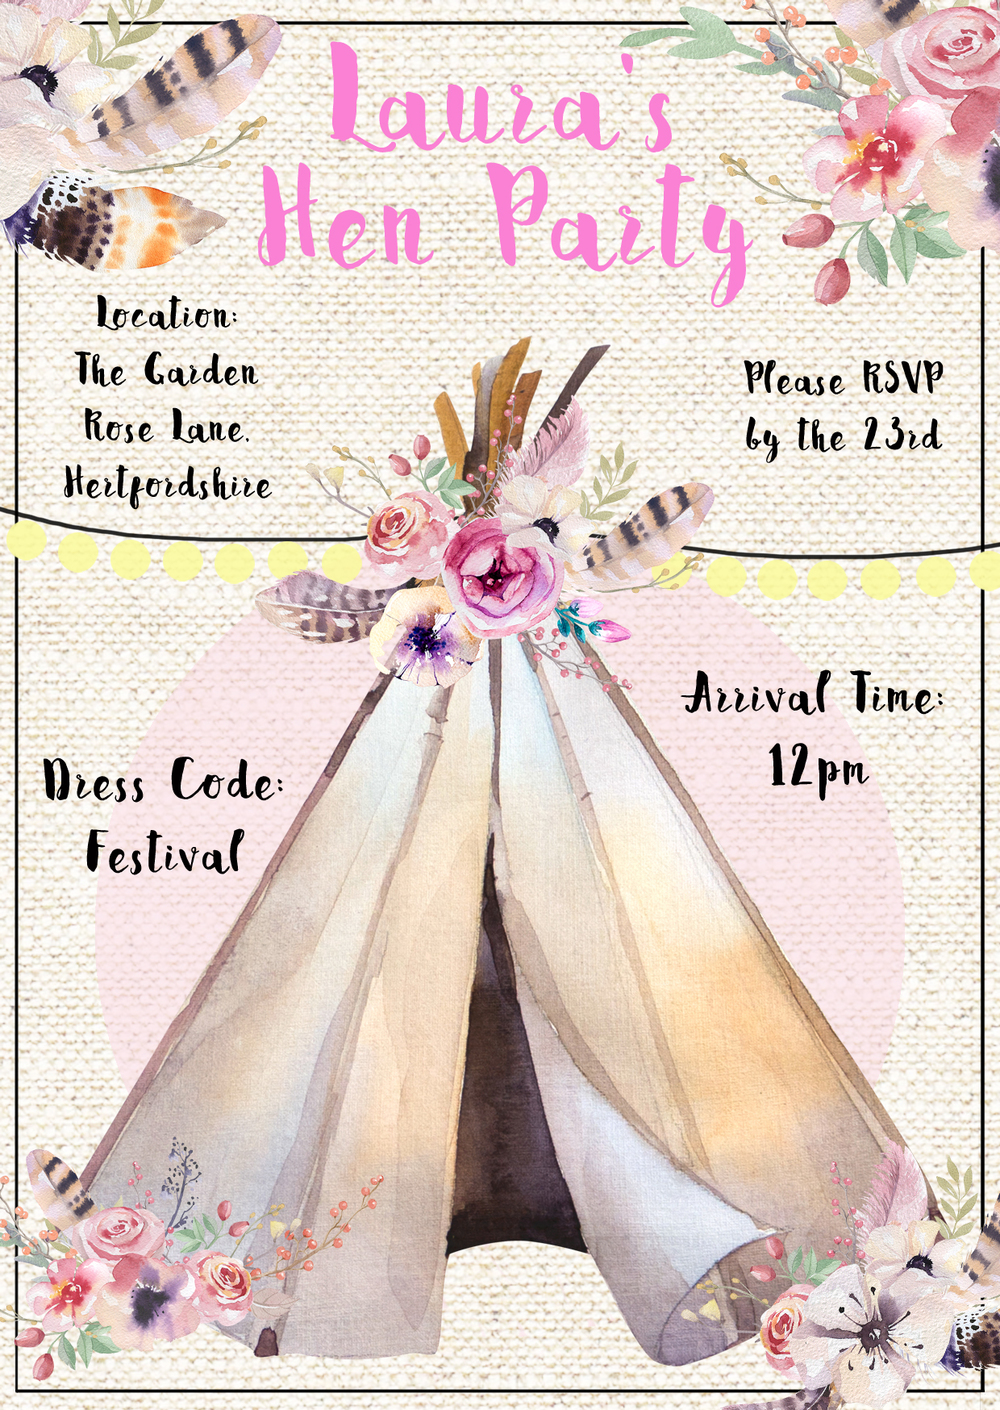 www.totallypinnable.com digital hen party invitation tipi floral festival themed. A6 in size.